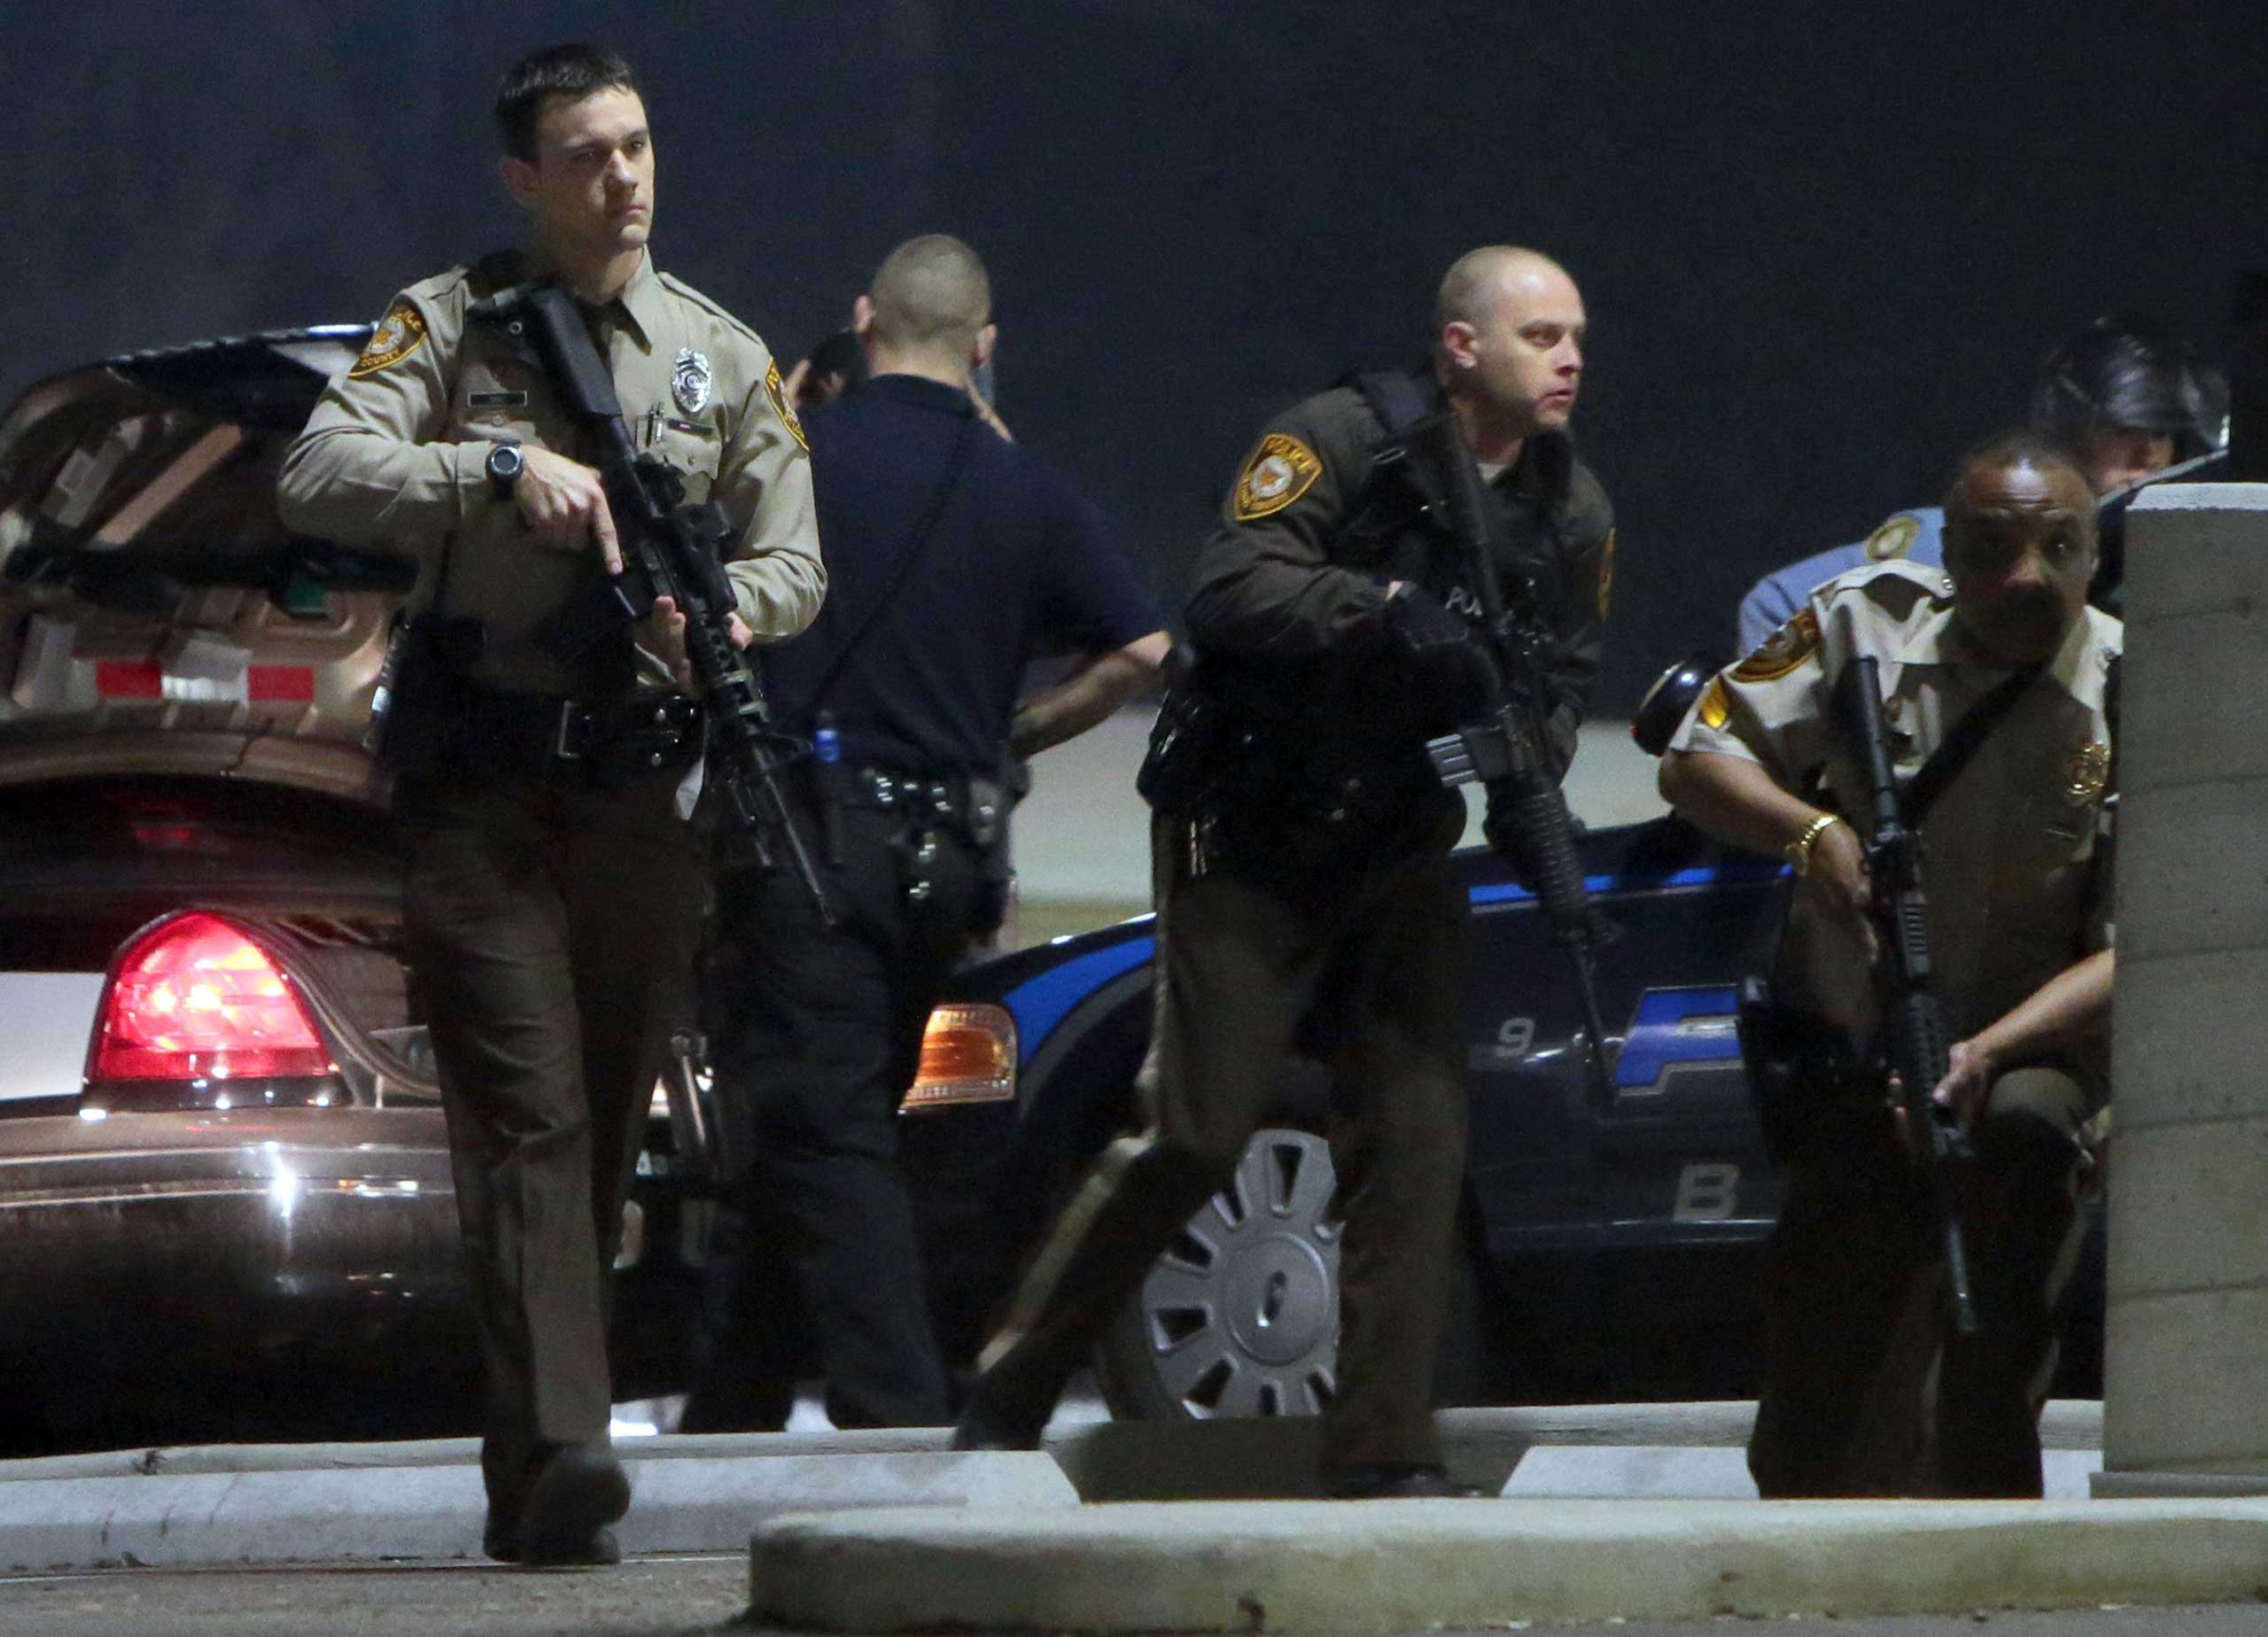 Police mobilize in the parking lot of the Ferguson Police Station after two police officers were shot while standing guard in front of the Ferguson Police Station, March 12, 2015.